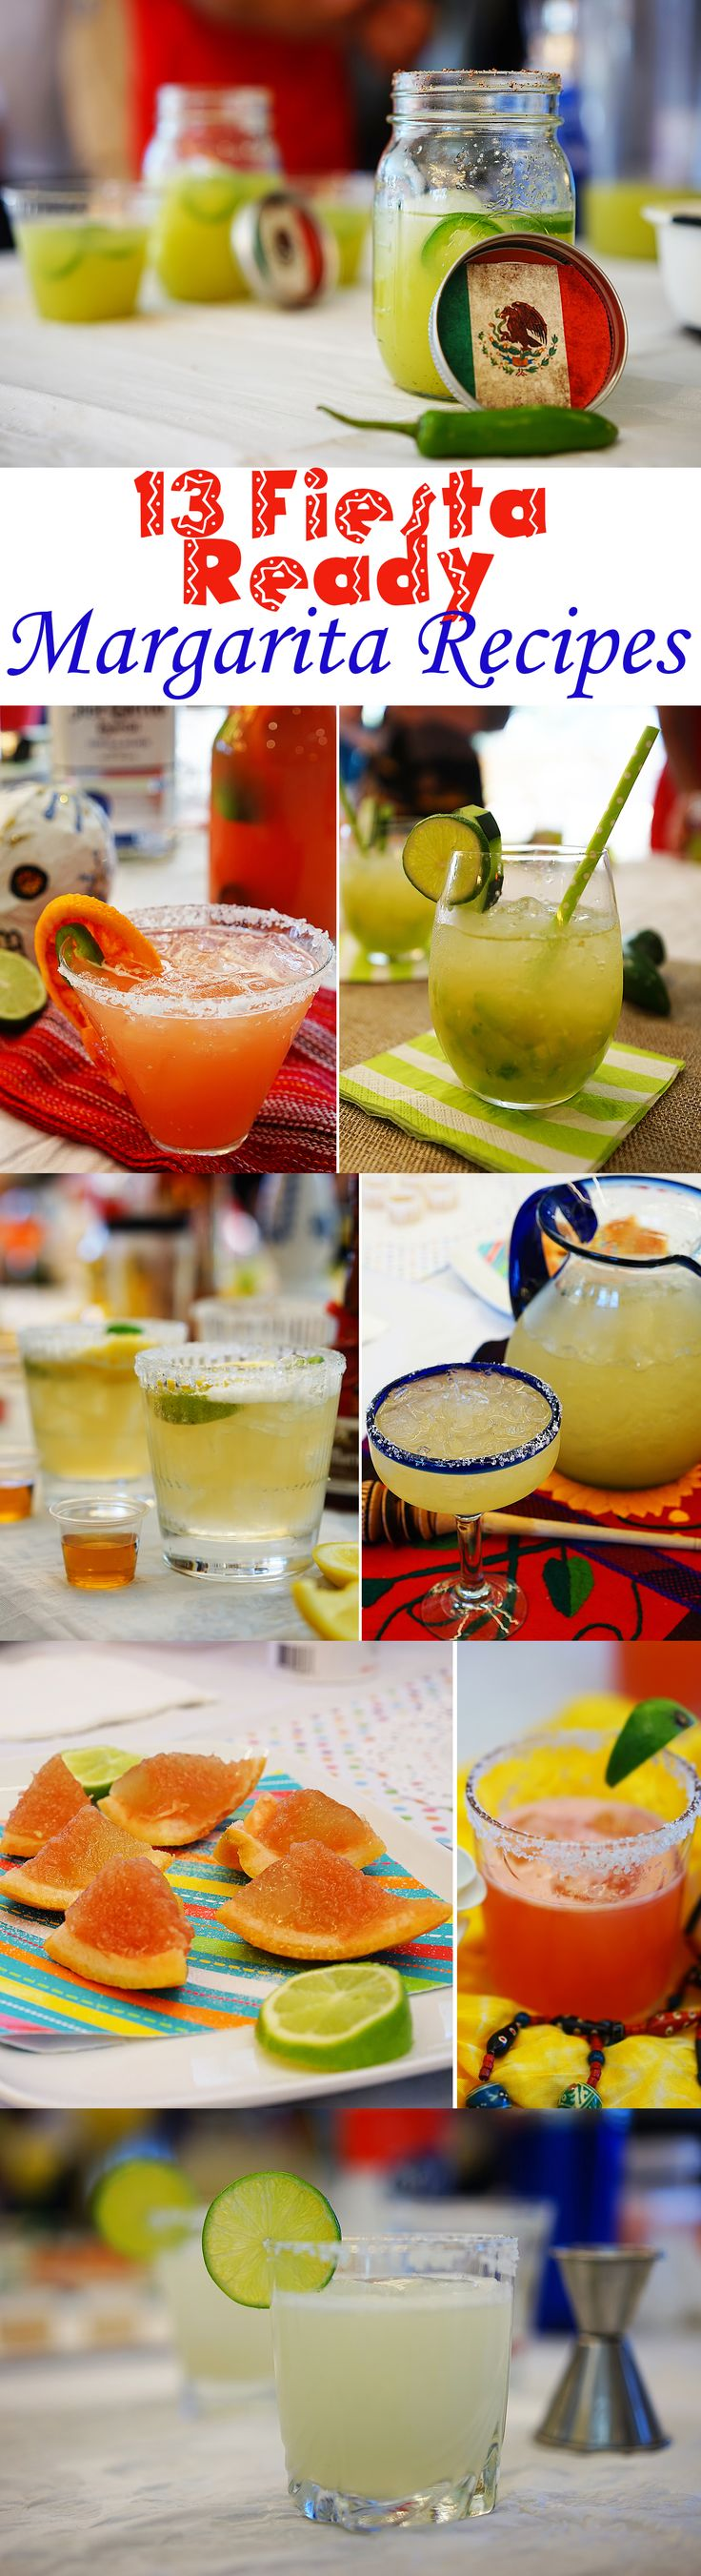 The best margarita recipes for any palate! Spicy, classics, fruity, the works! Check out all 13 recipes just in time for Cinco de Mayo. #recipes